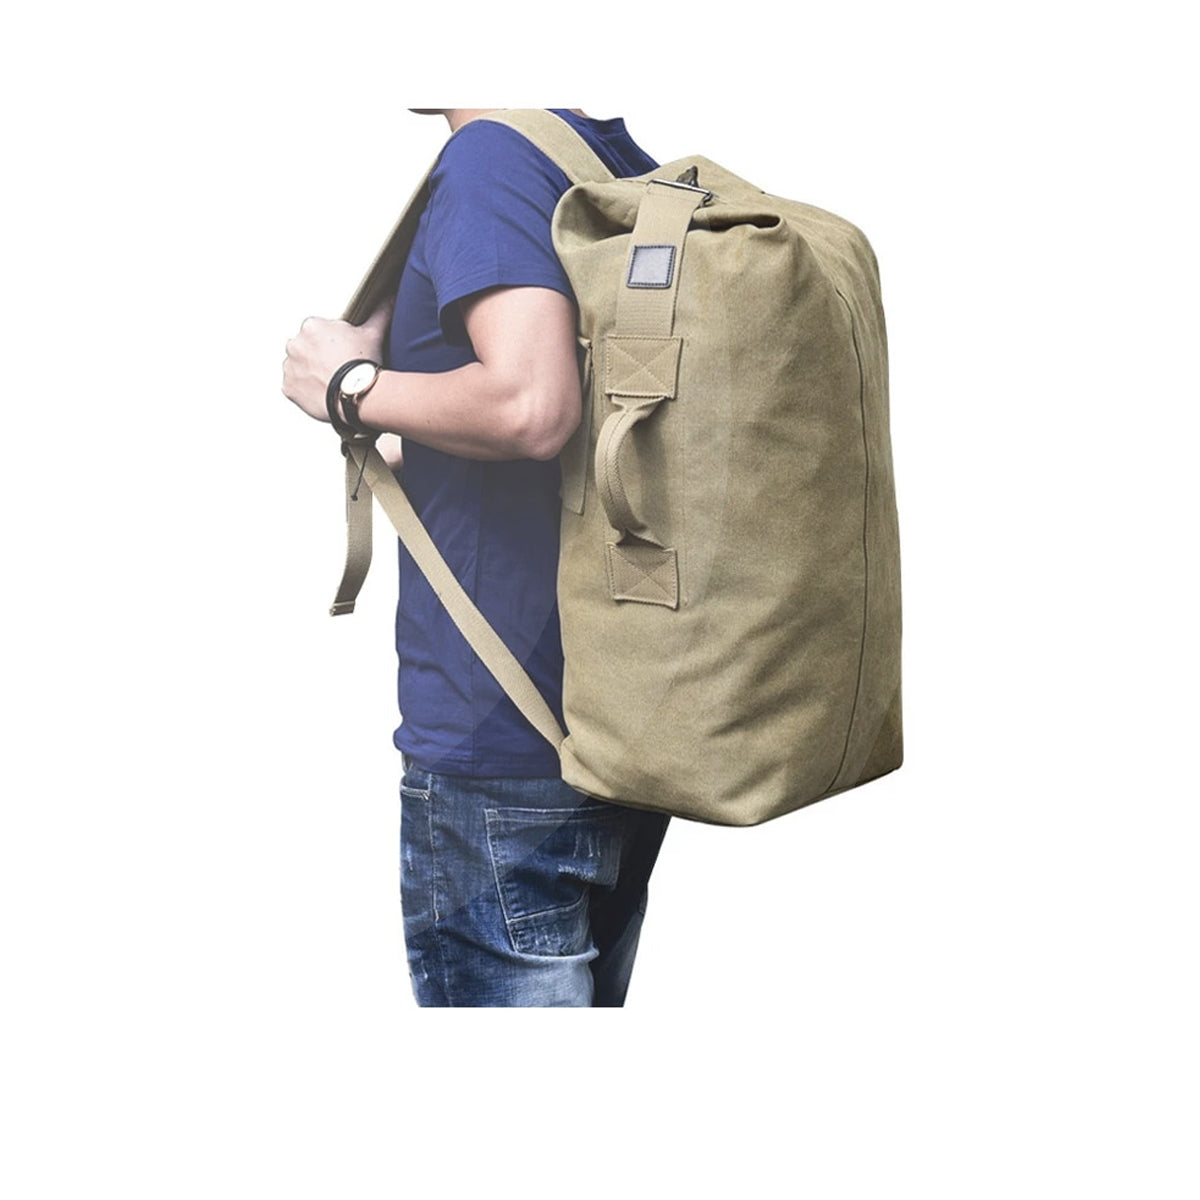 Large Capacity Unisex Multi-pocket Military Tactical Backpack Made of High-quality Canvas